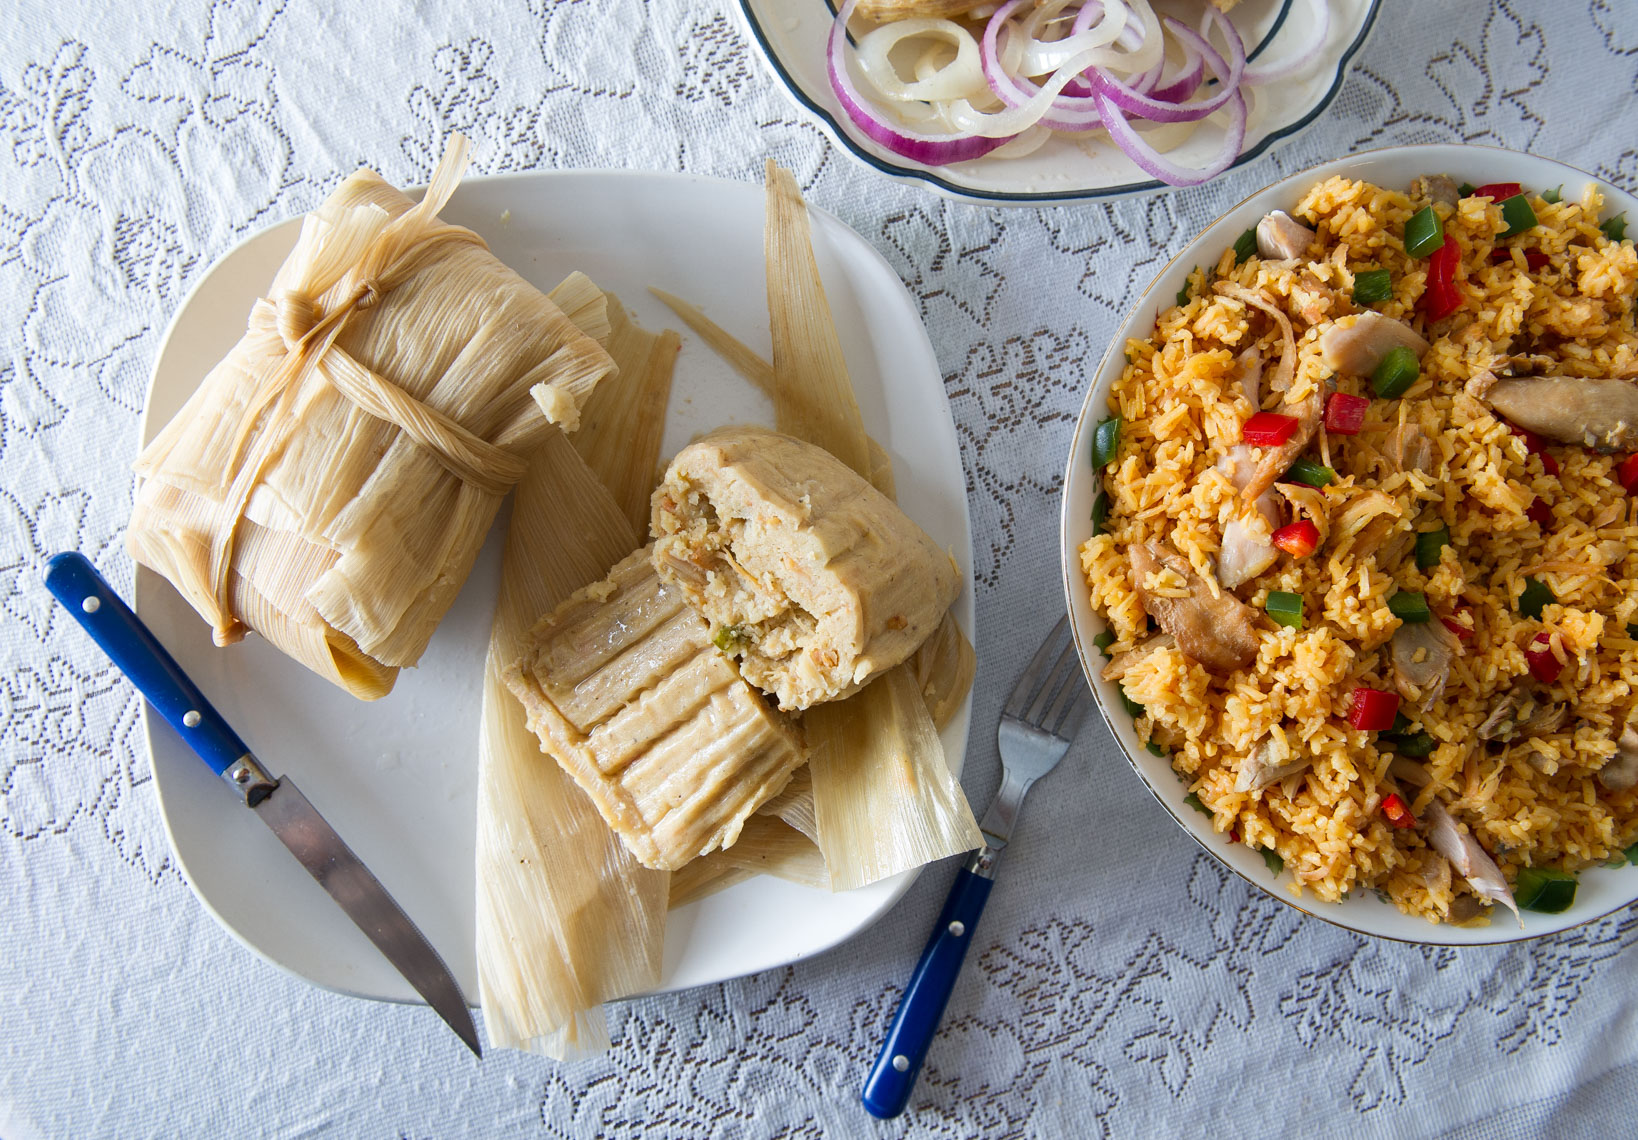 Photo by Morgan Ione Yeager, NYC Food photographer, Umi Home Cooking, Cuban food, New Haven CT, startup